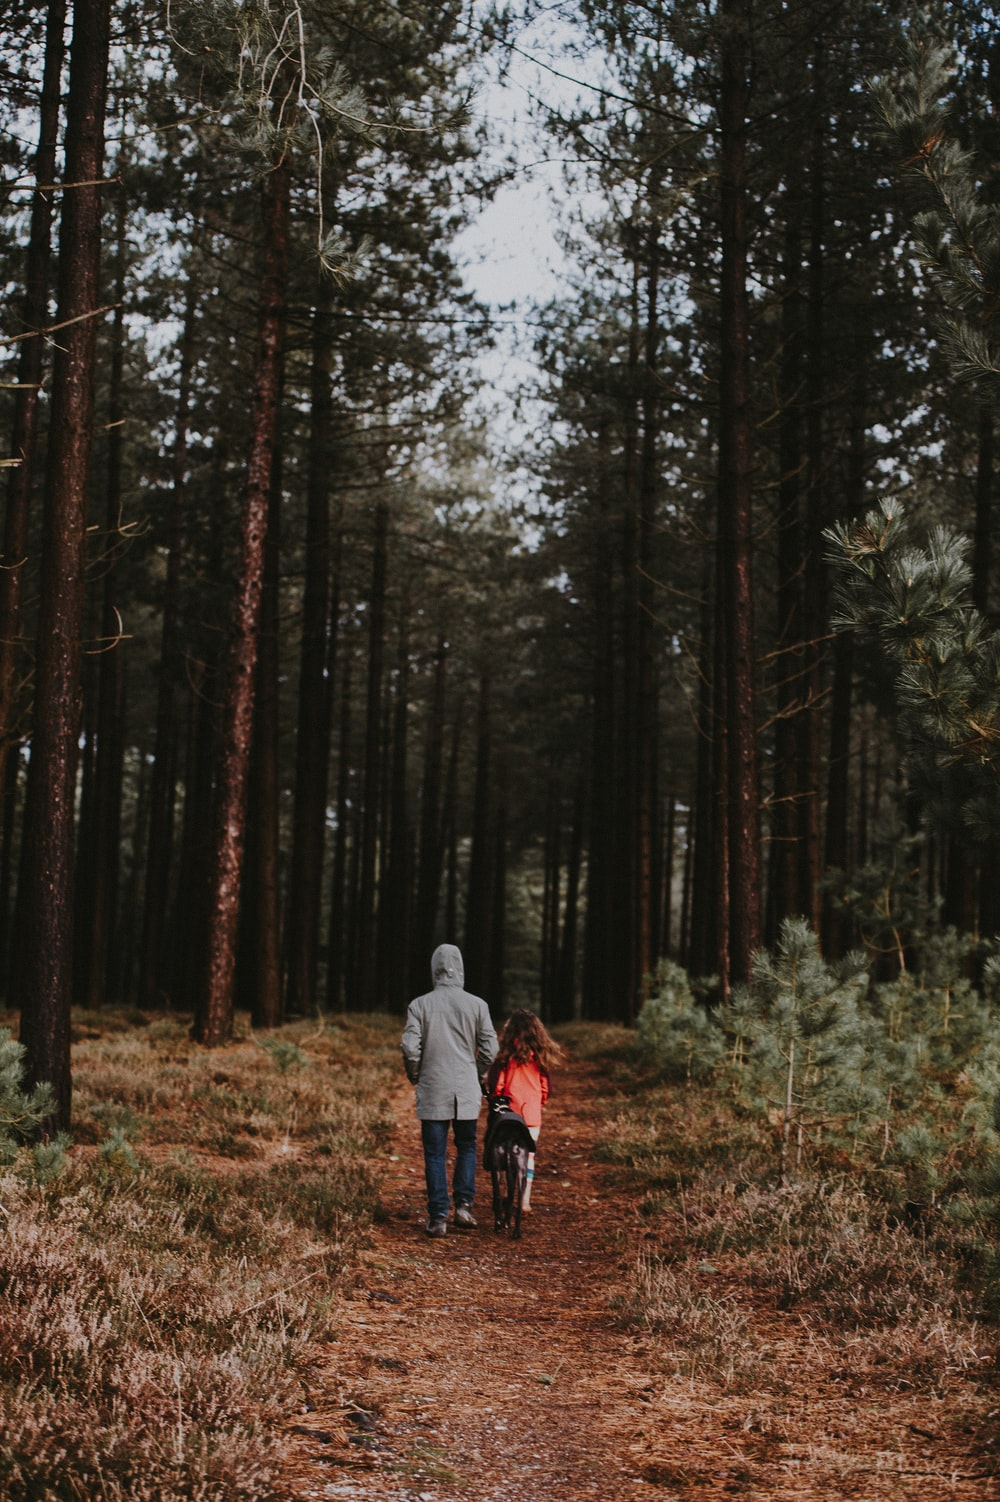 two person walking on pathway between trees